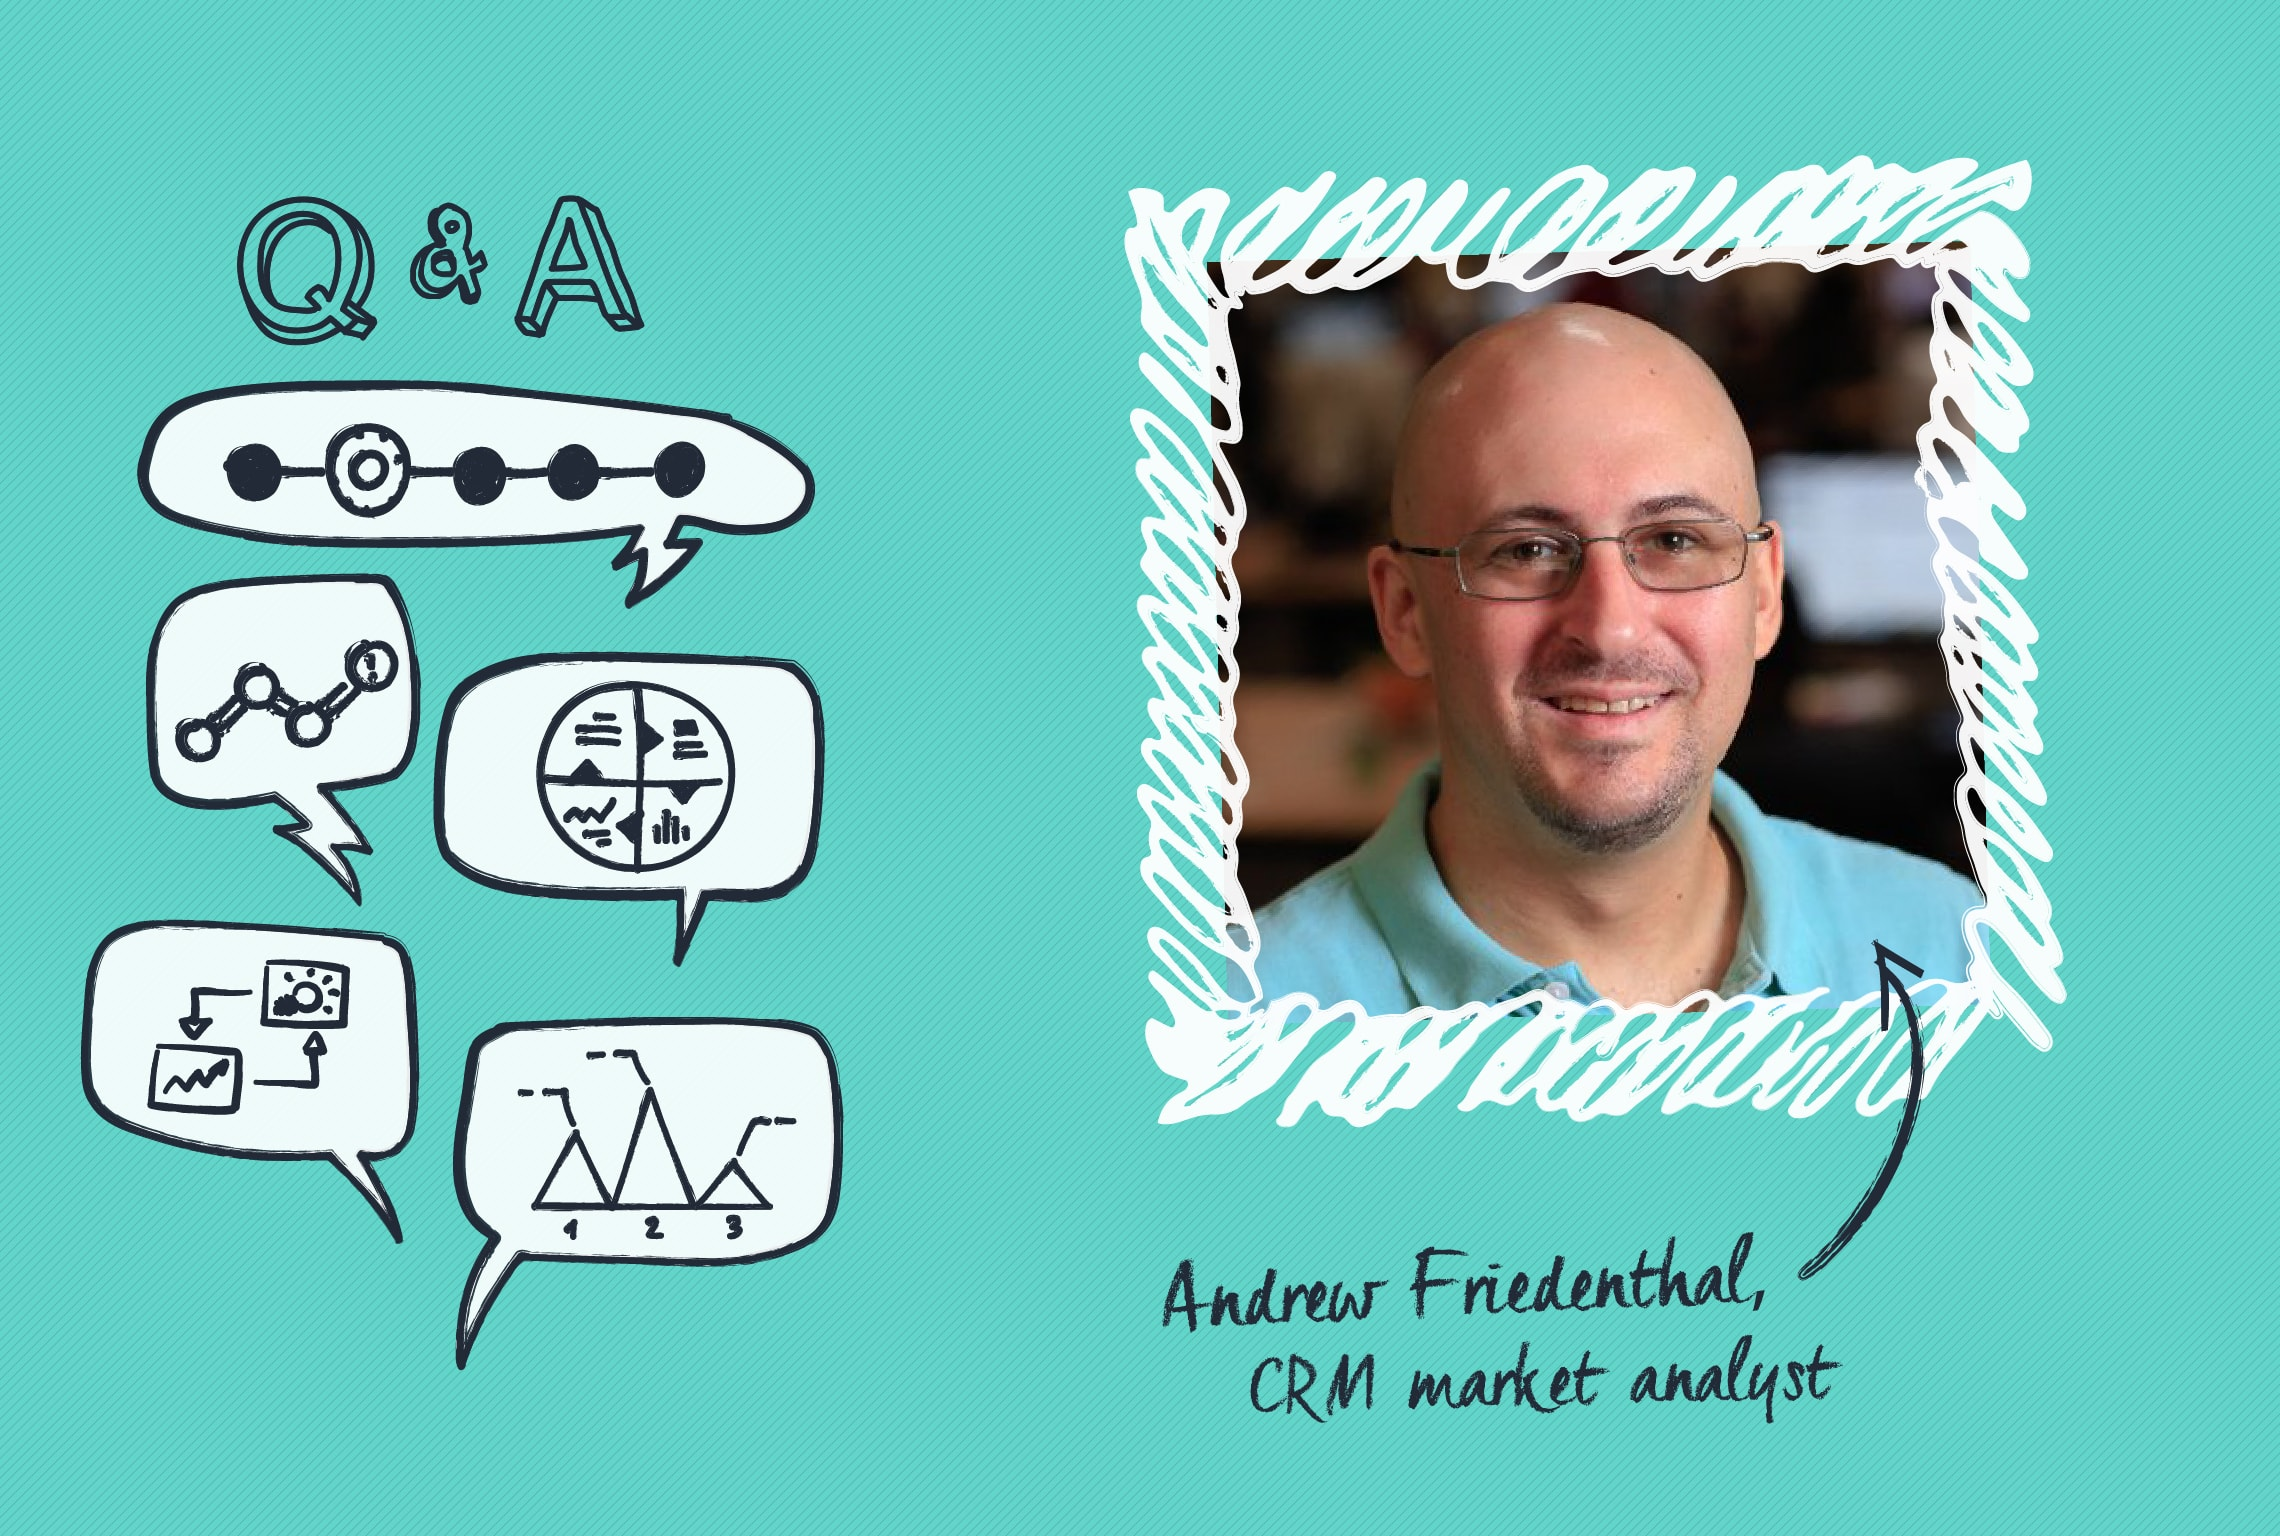 crm for small business most important crm features Andrew Friedenthal